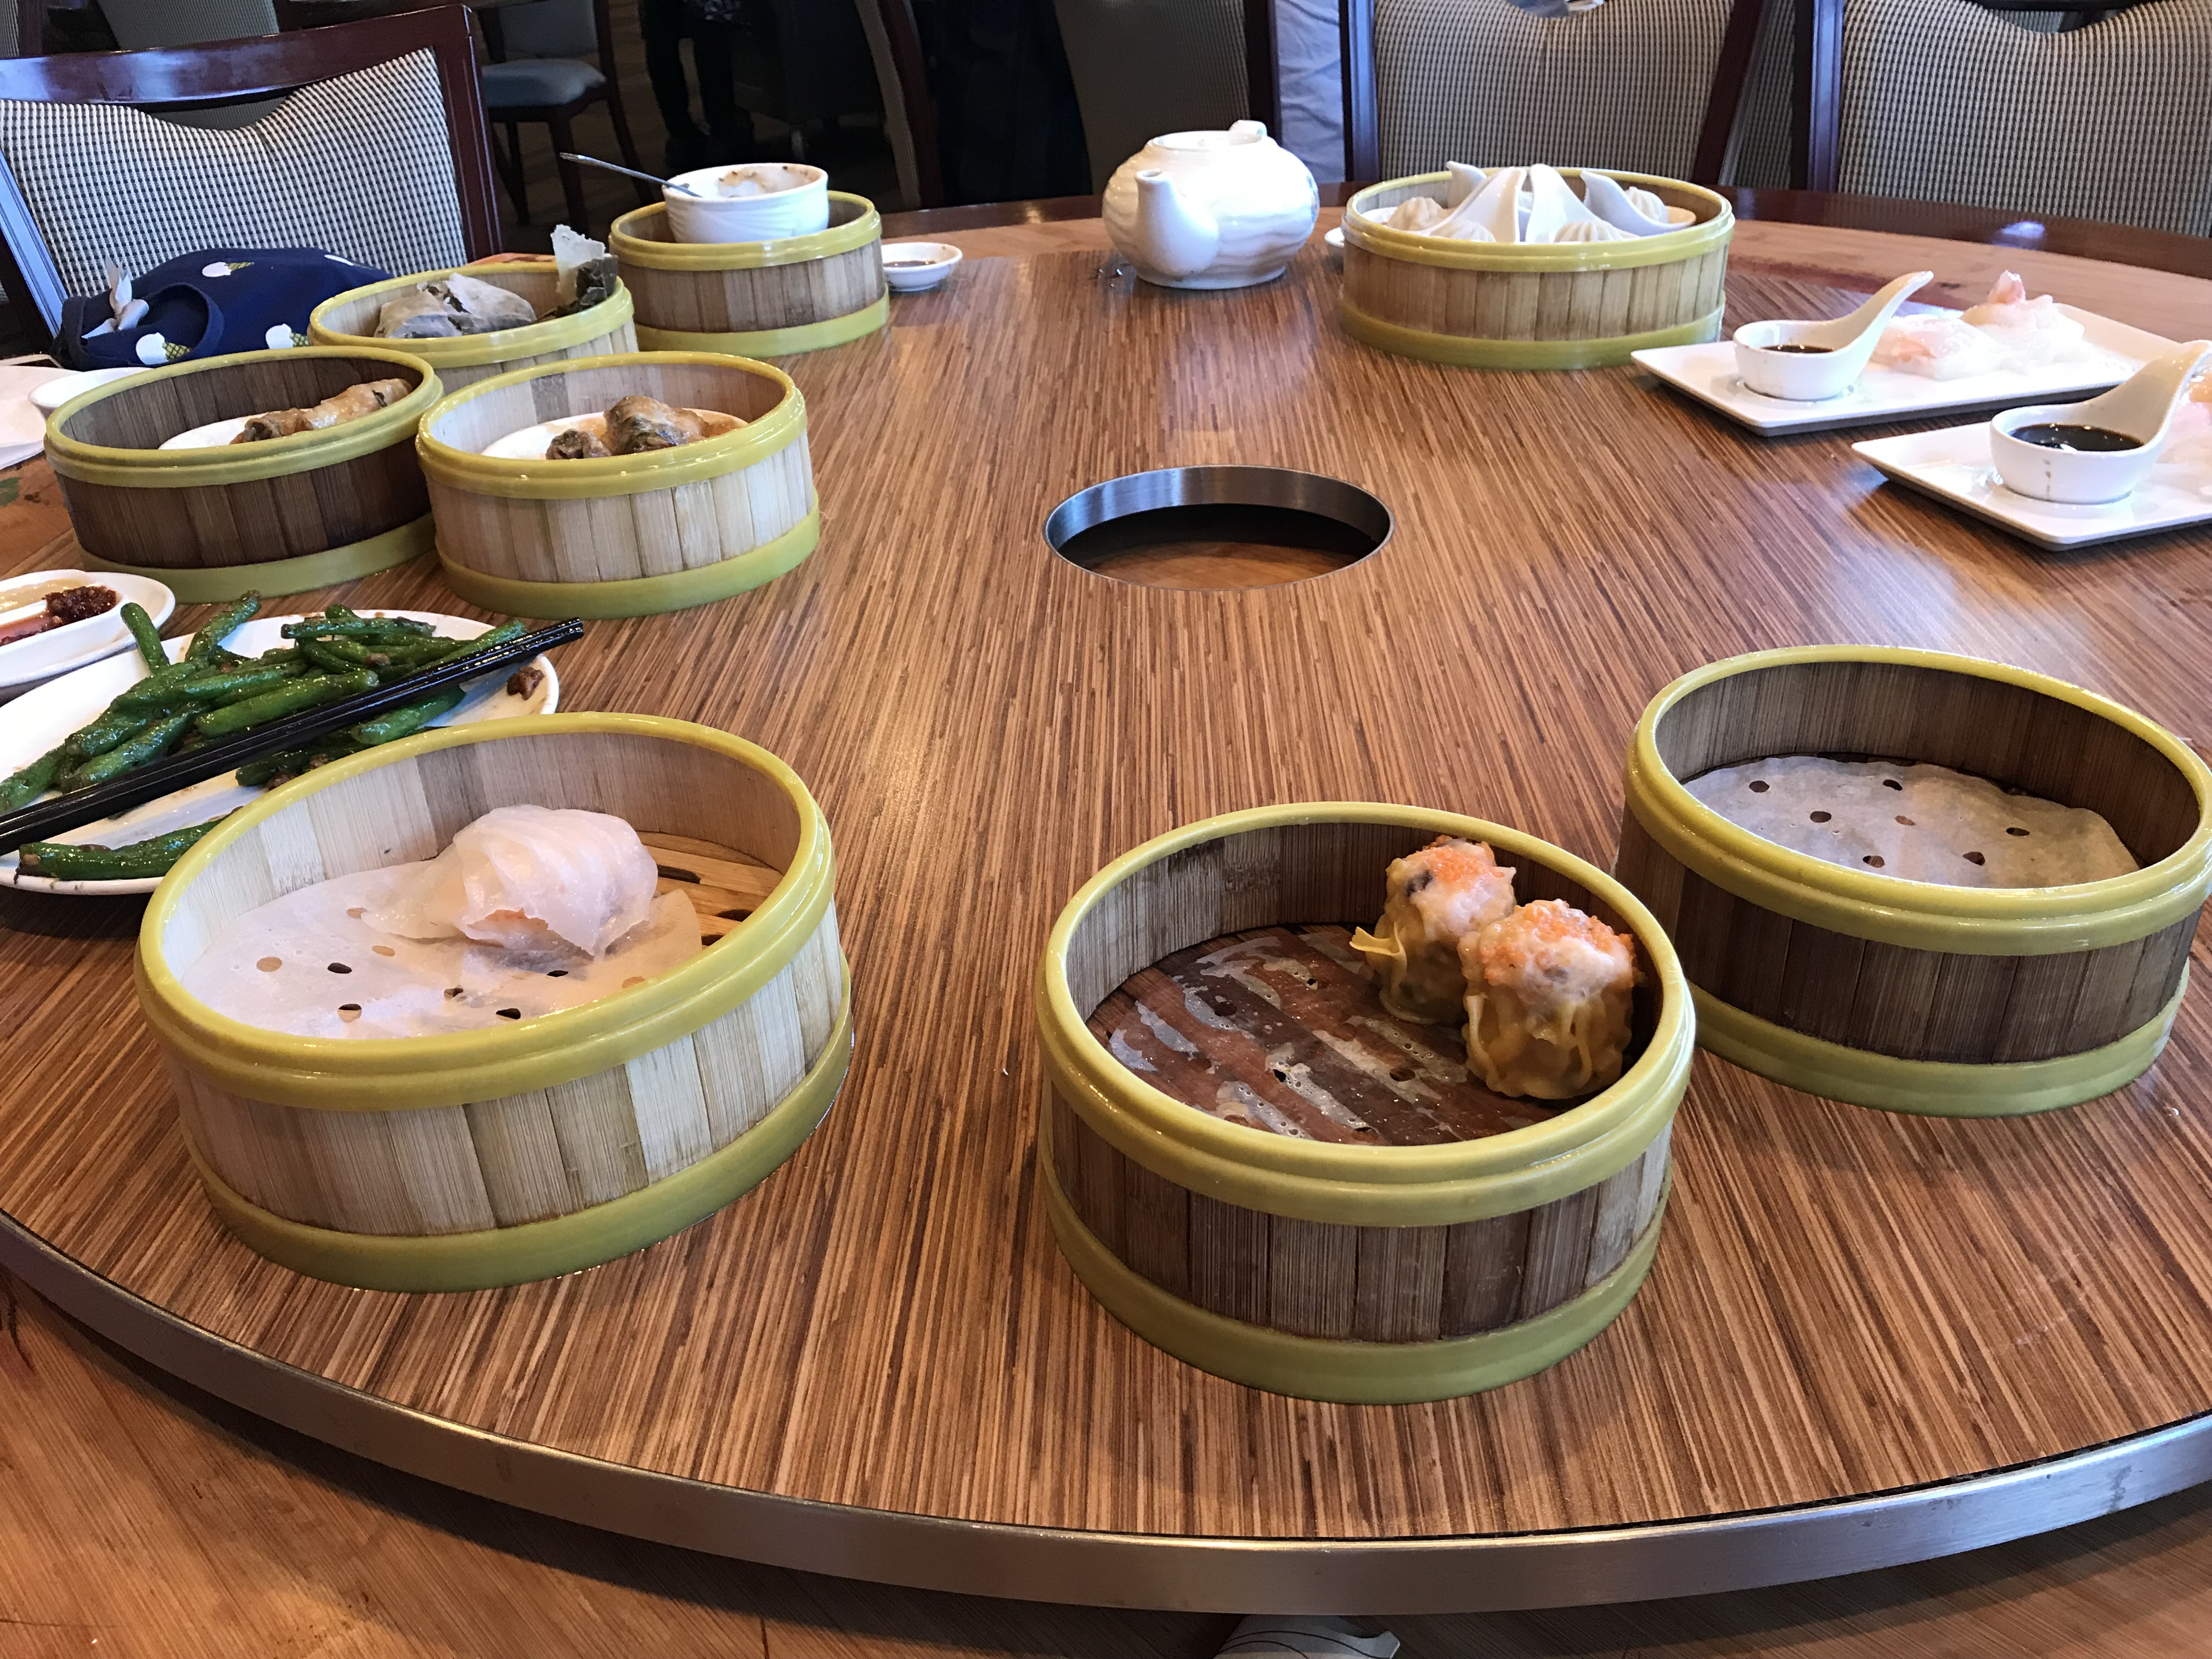 Dim sum meal, Ms. Adventures in Italy, by Sara Rosso